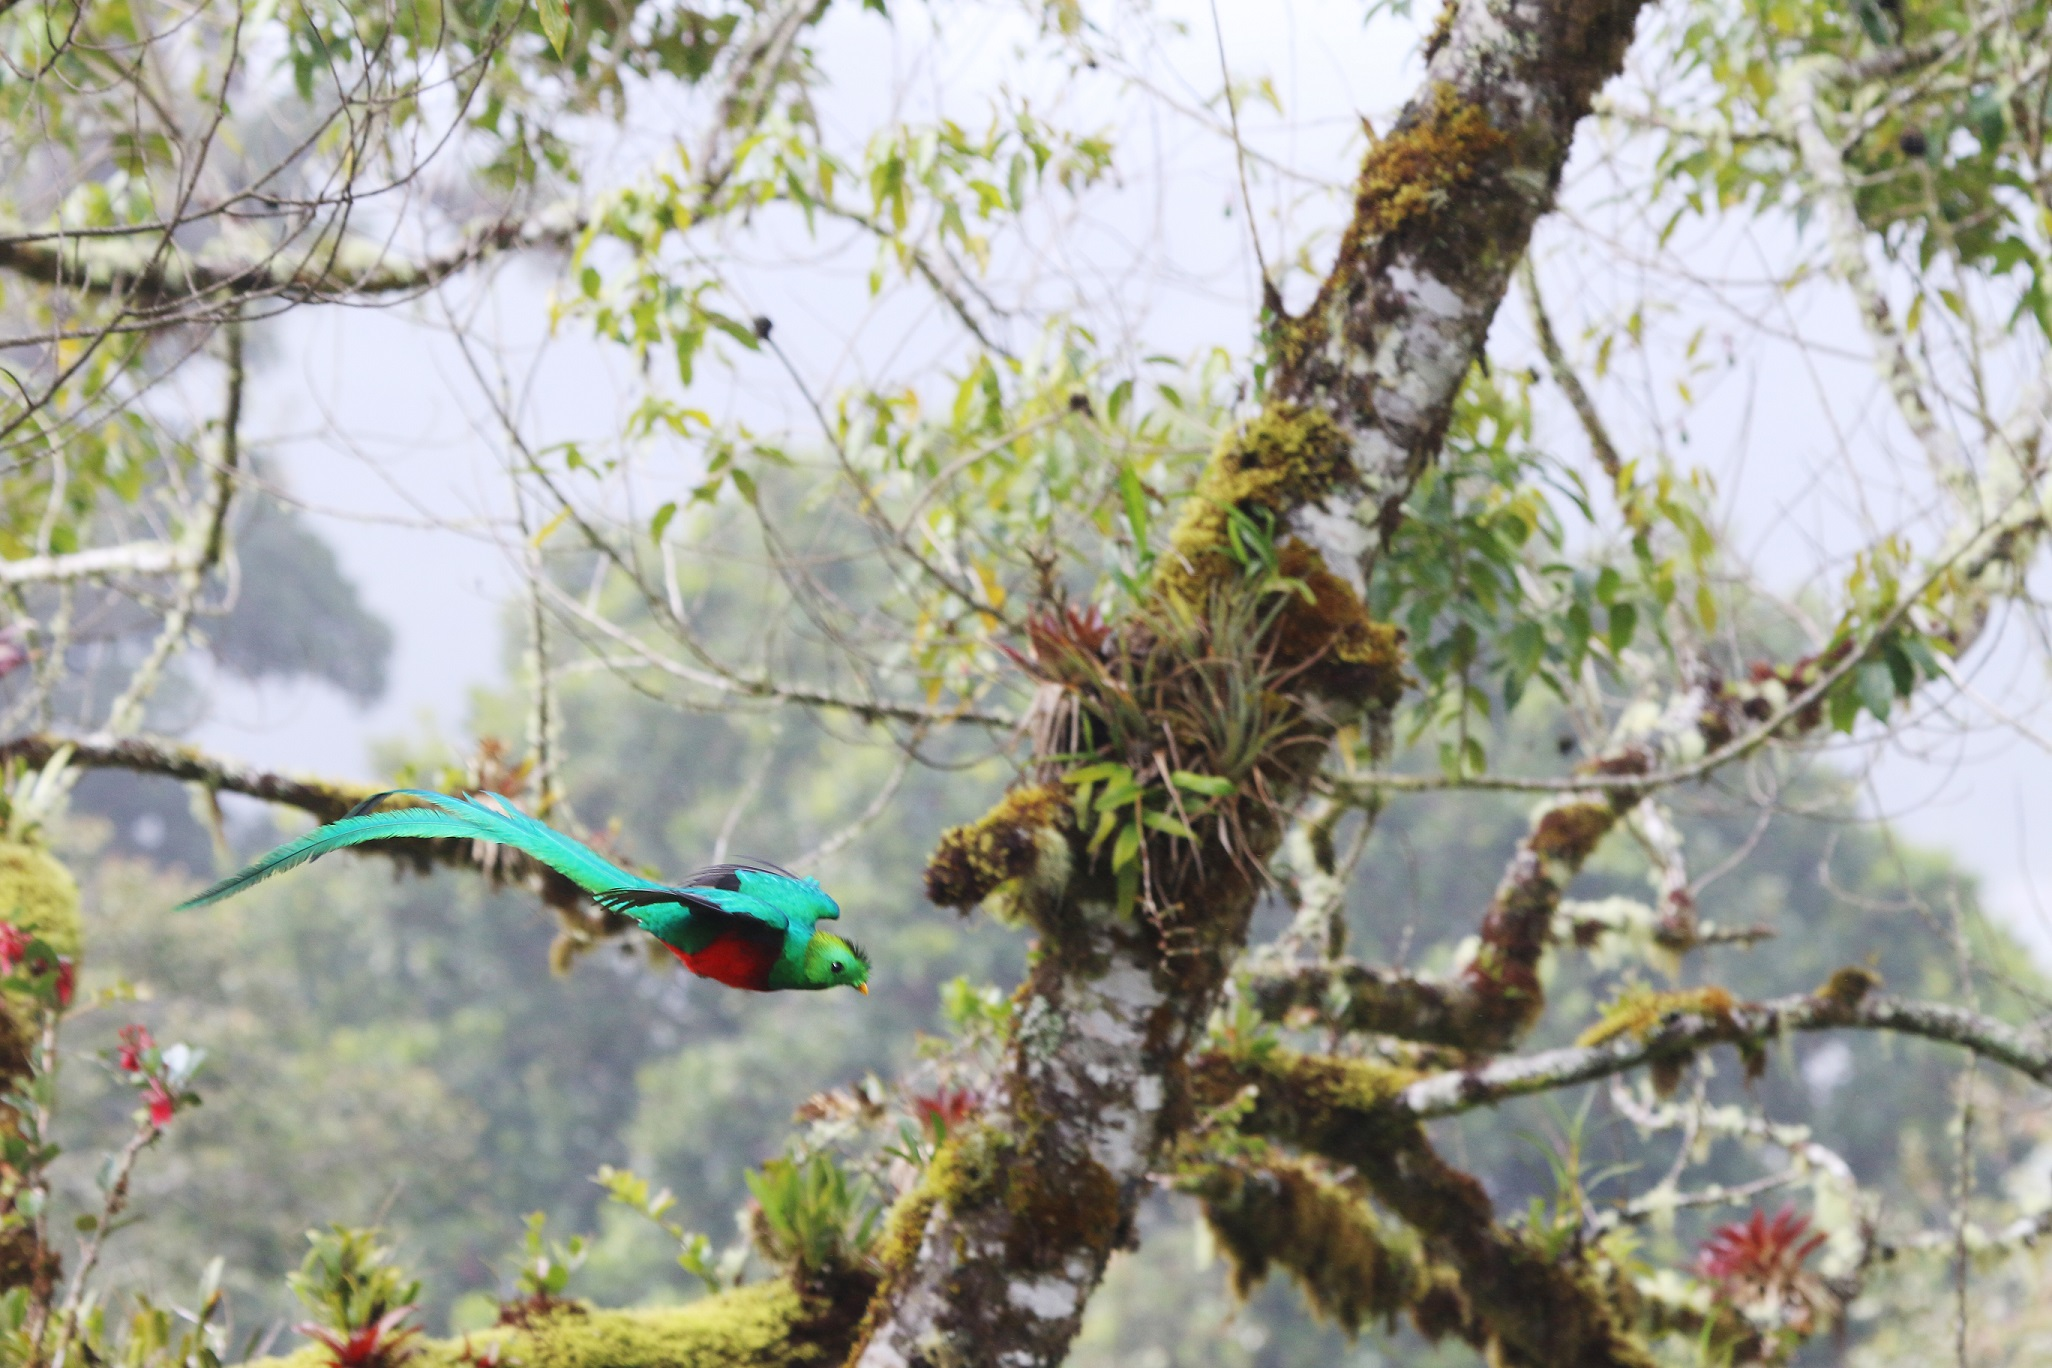 Quetzal, photo by M Fallas